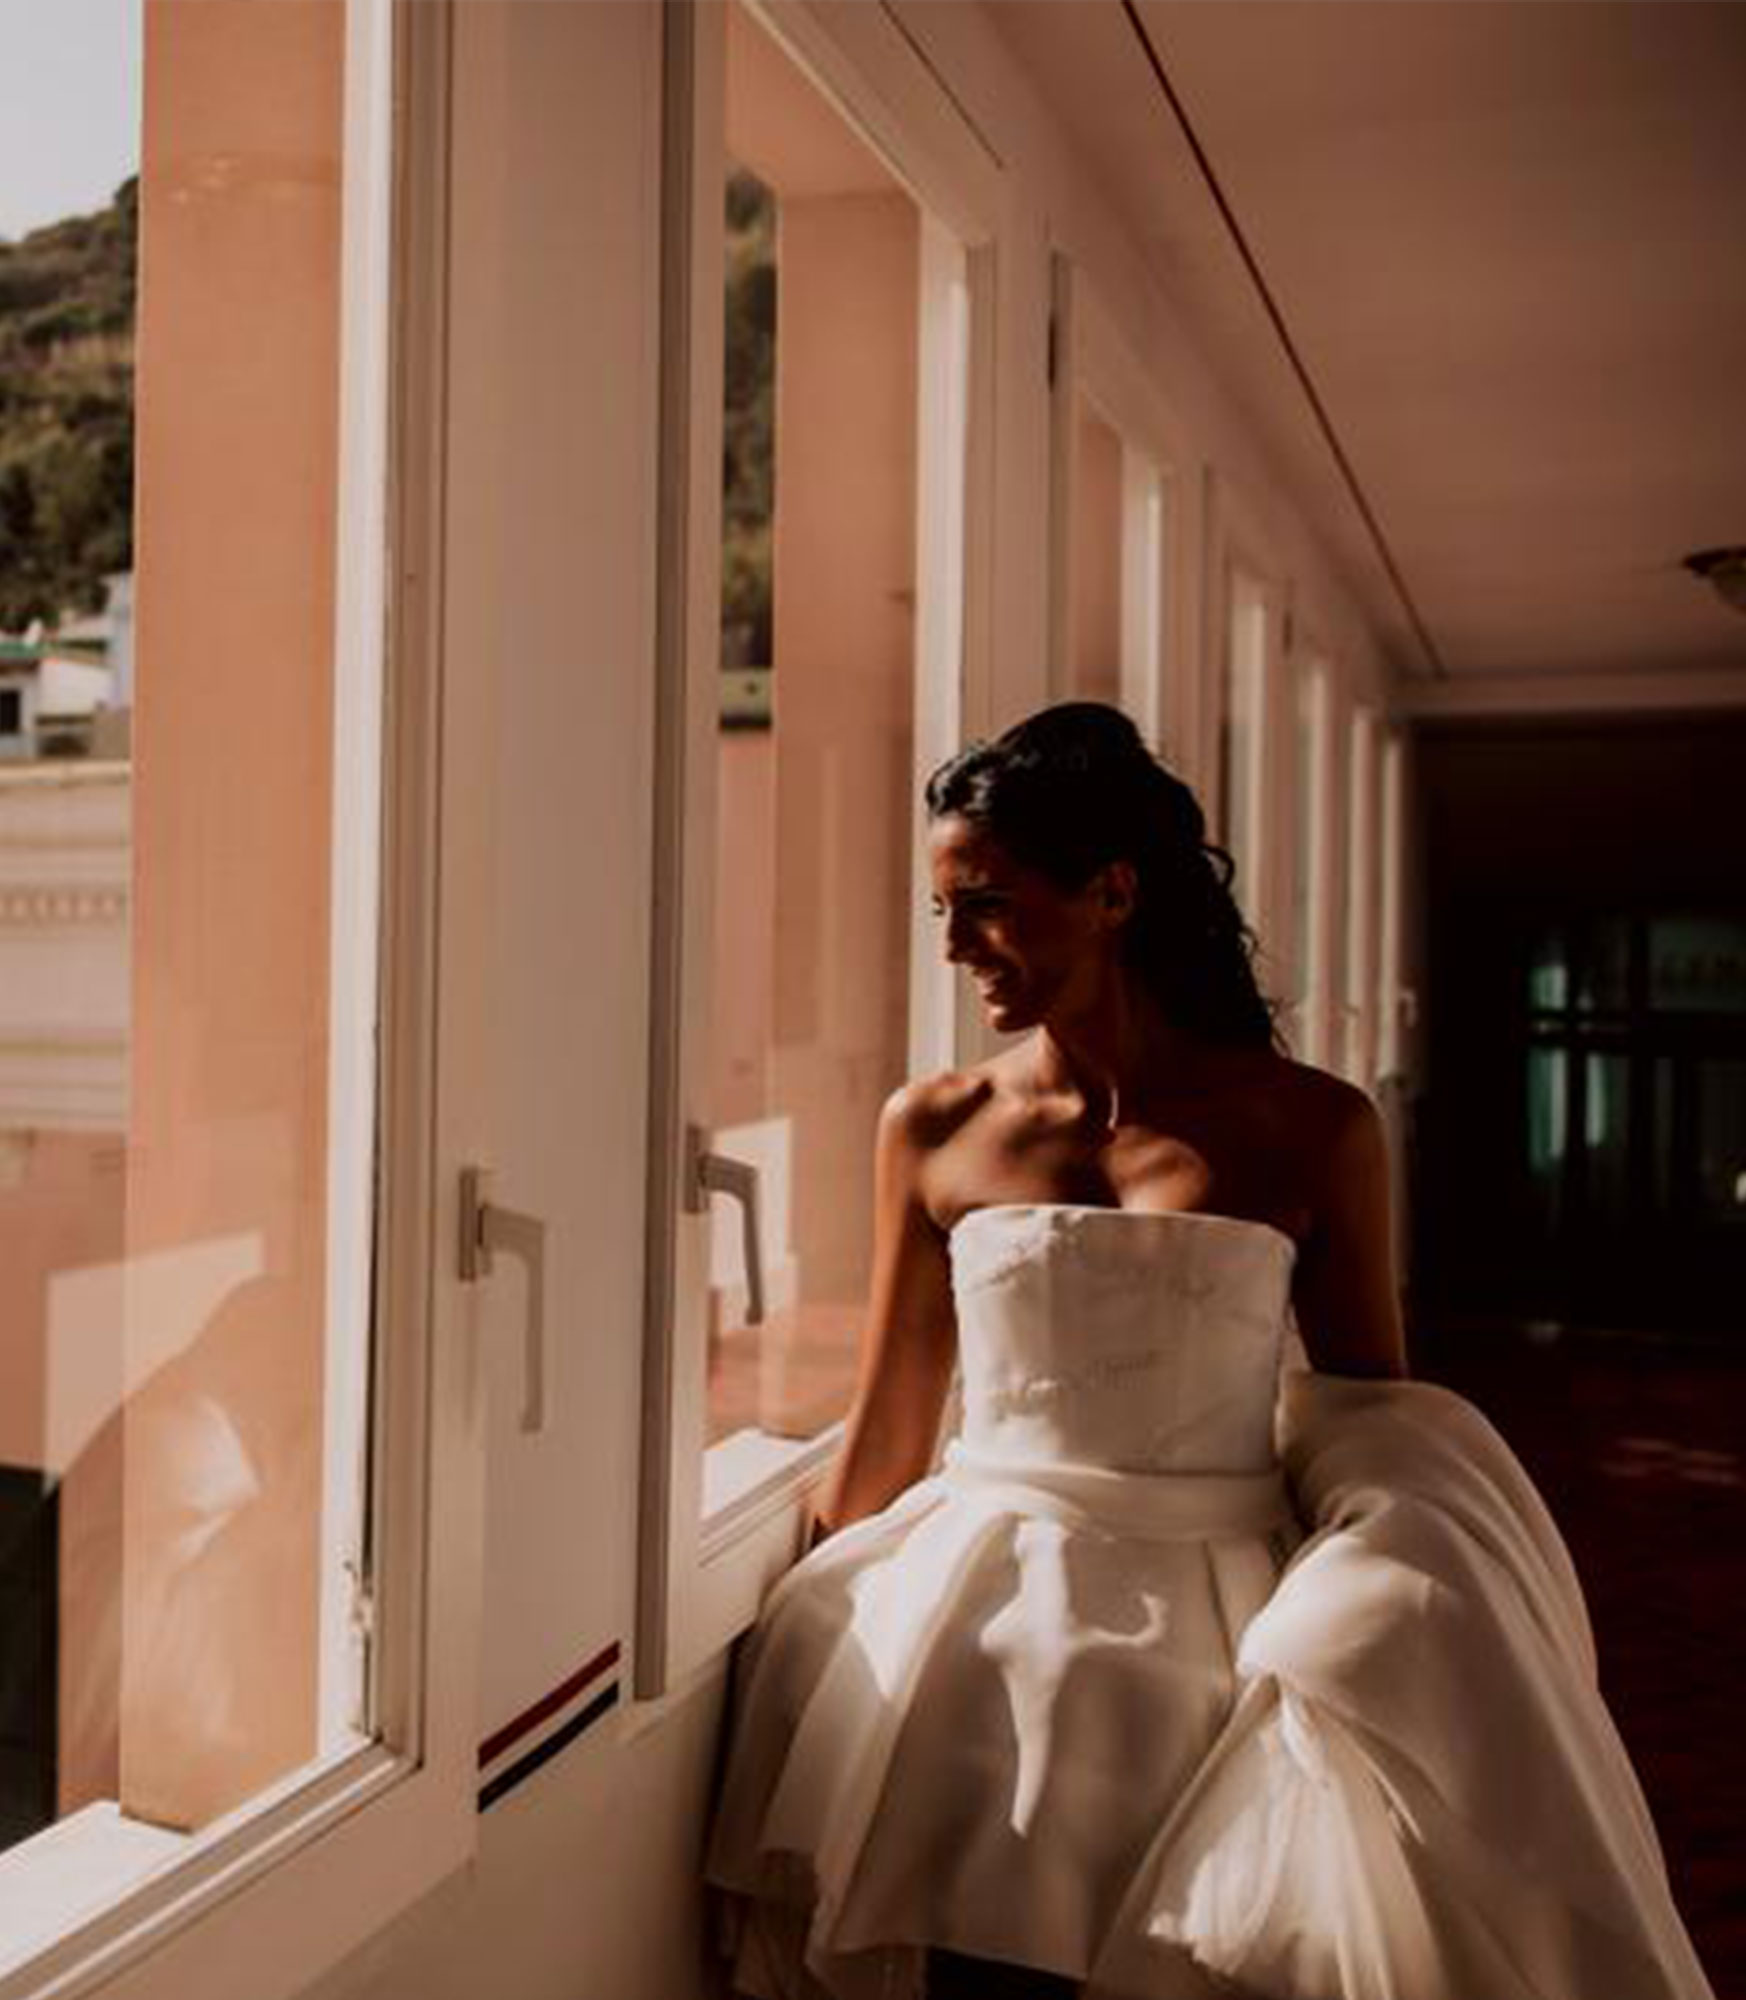 Hotels and Villas for wedding guests